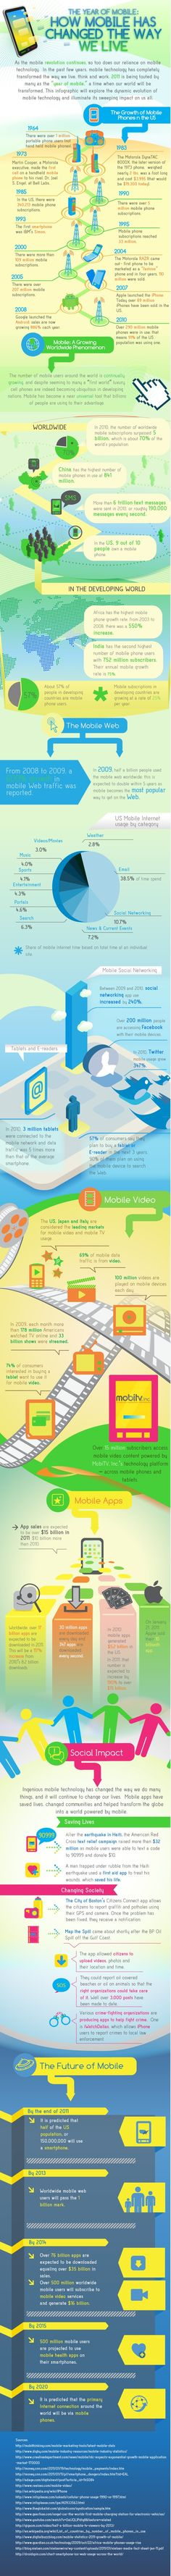 Nice! The Mobile Web And How It Changes How We Live, Work & Play  #Infographic